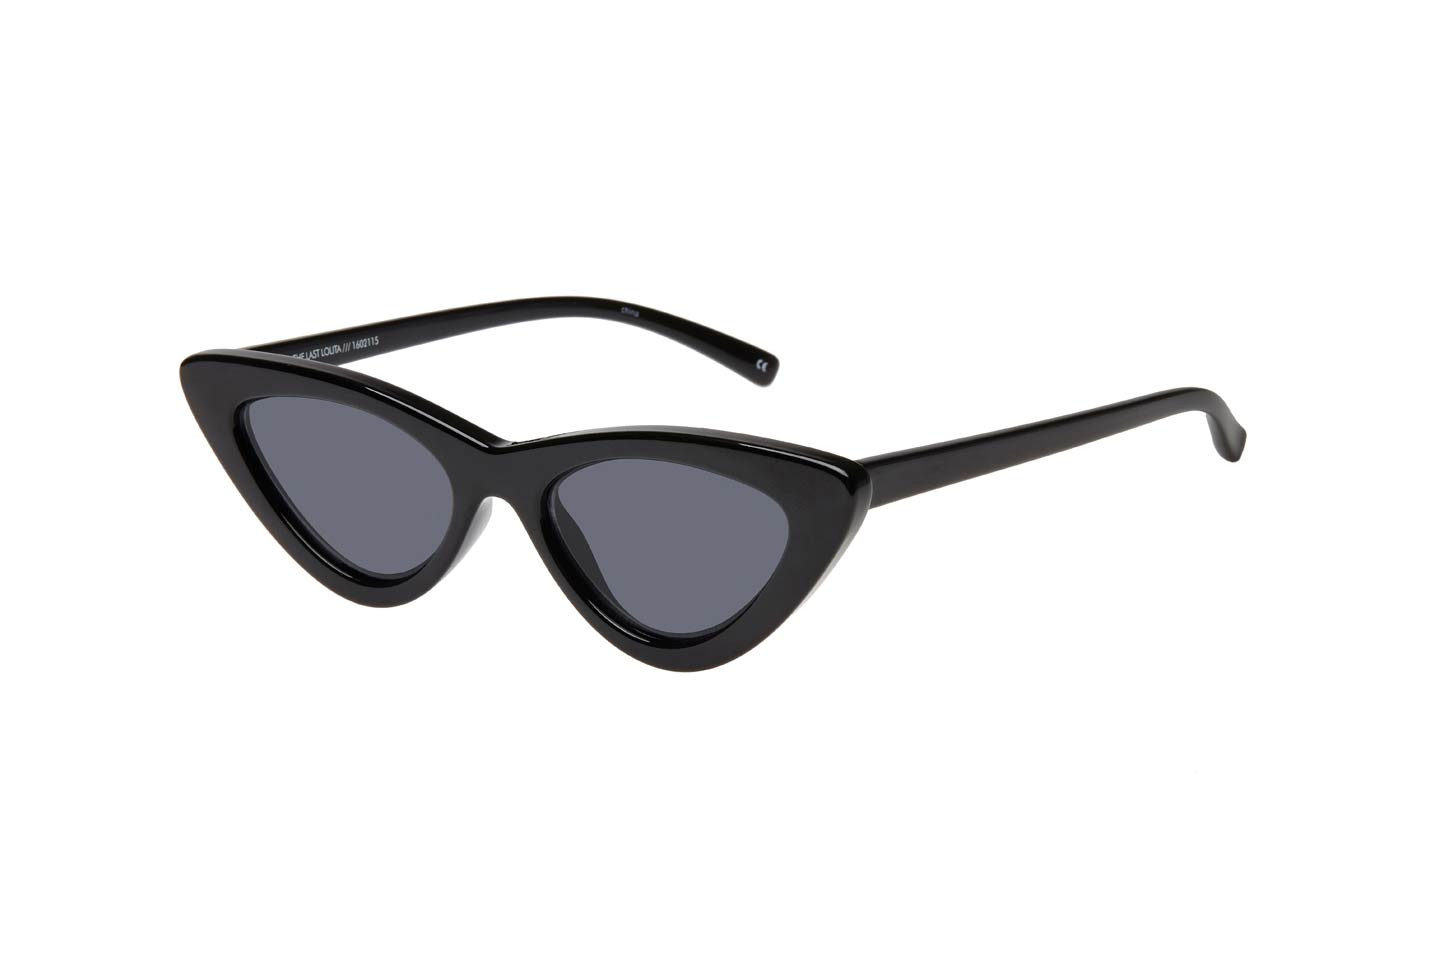 Matrix Sunglasses Round-Up Balenciaga Gucci Adam Selman